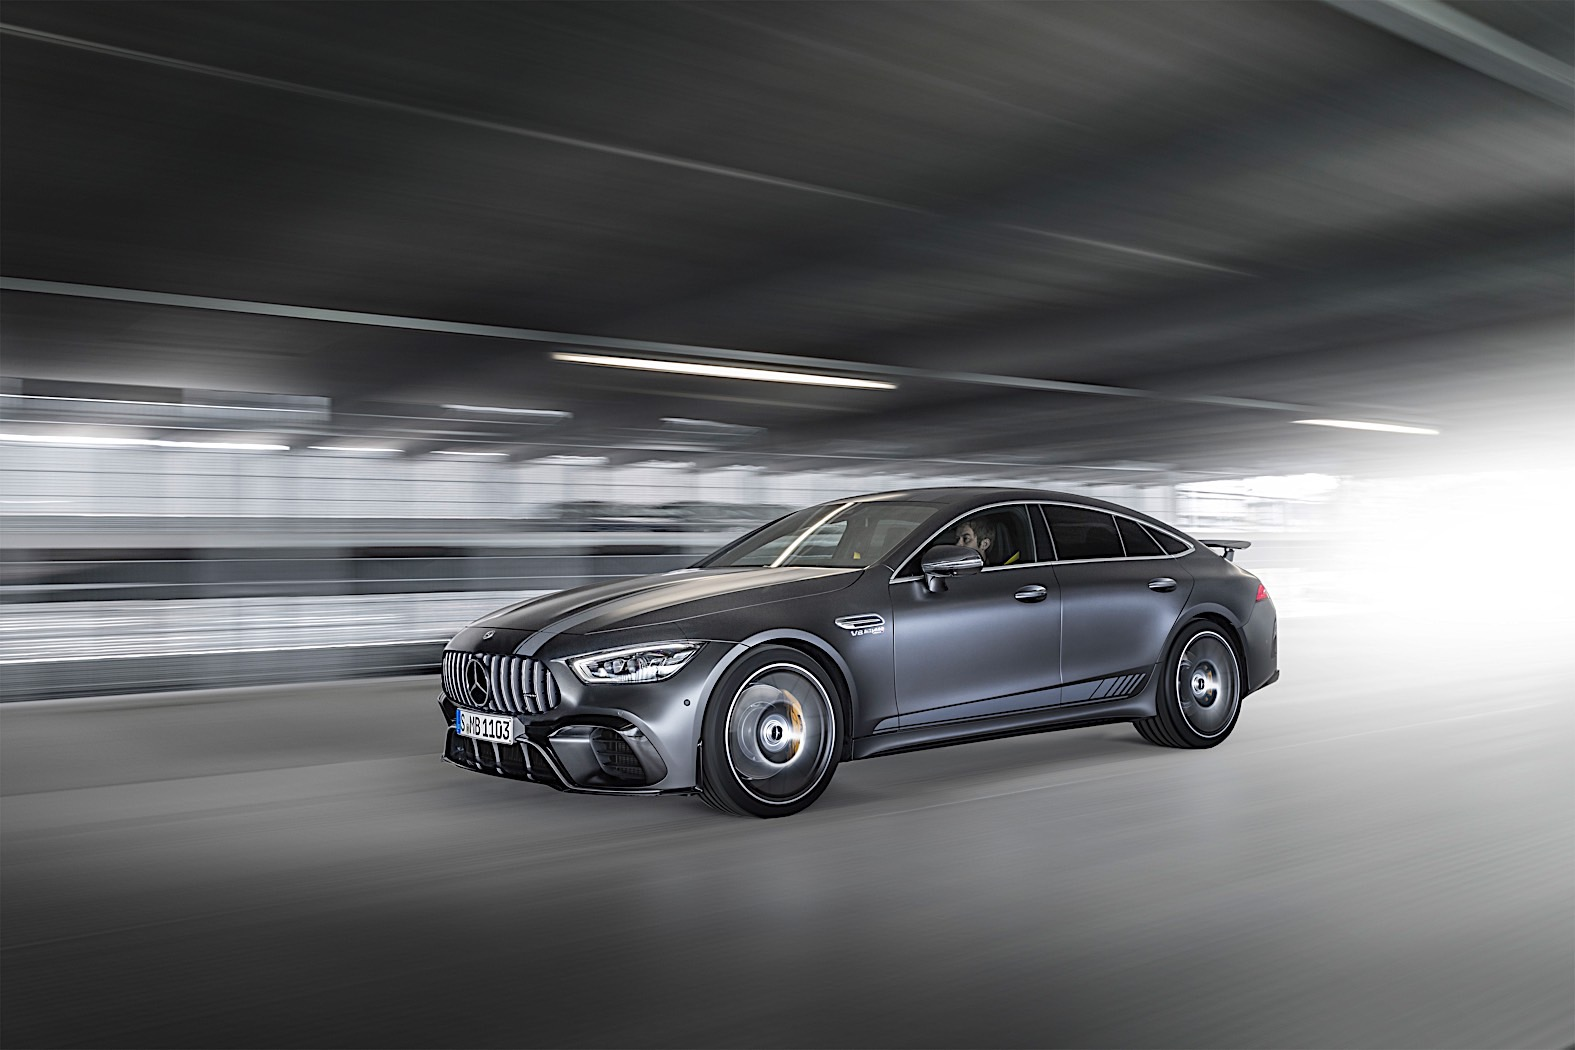 Mercedes Amg Gt Monster Hybrid Confirmed Electric Driving Noise Is Important